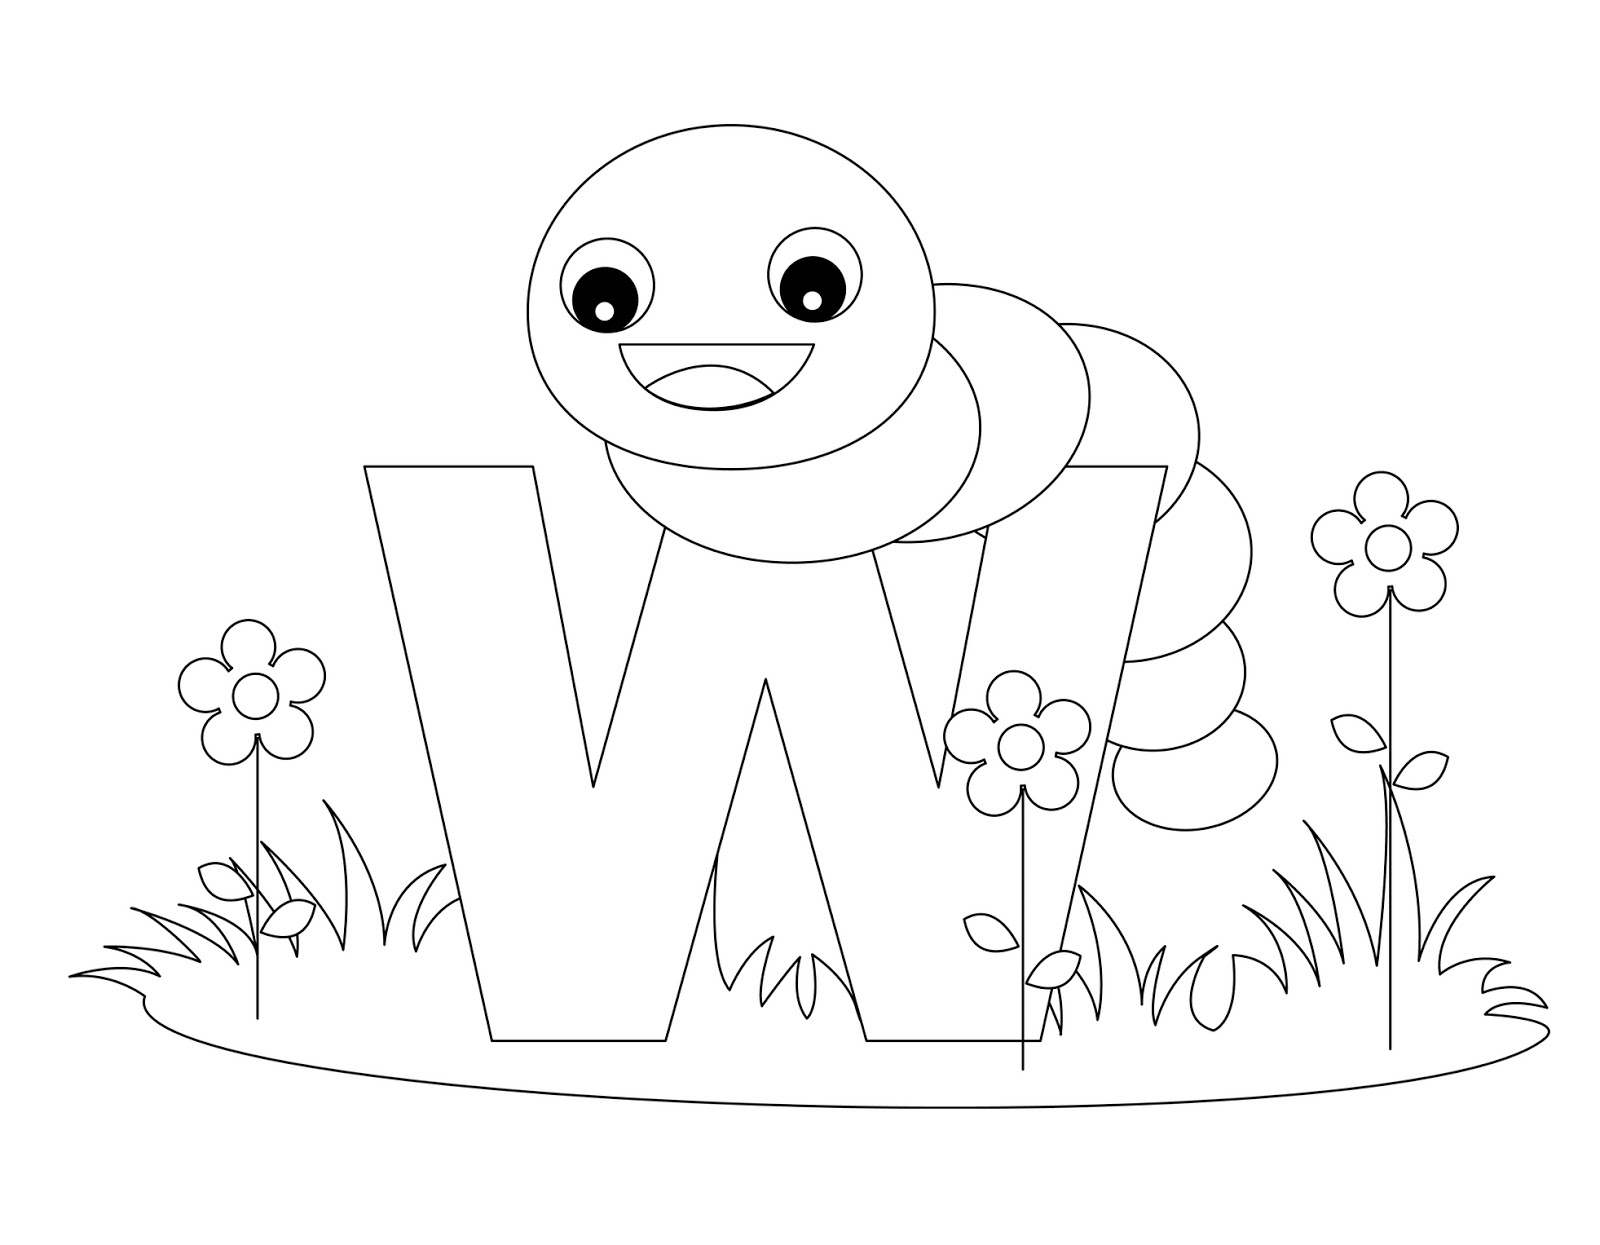 coloring pages alphabet free fun coloring pages alphabet coloring pages free coloring pages alphabet